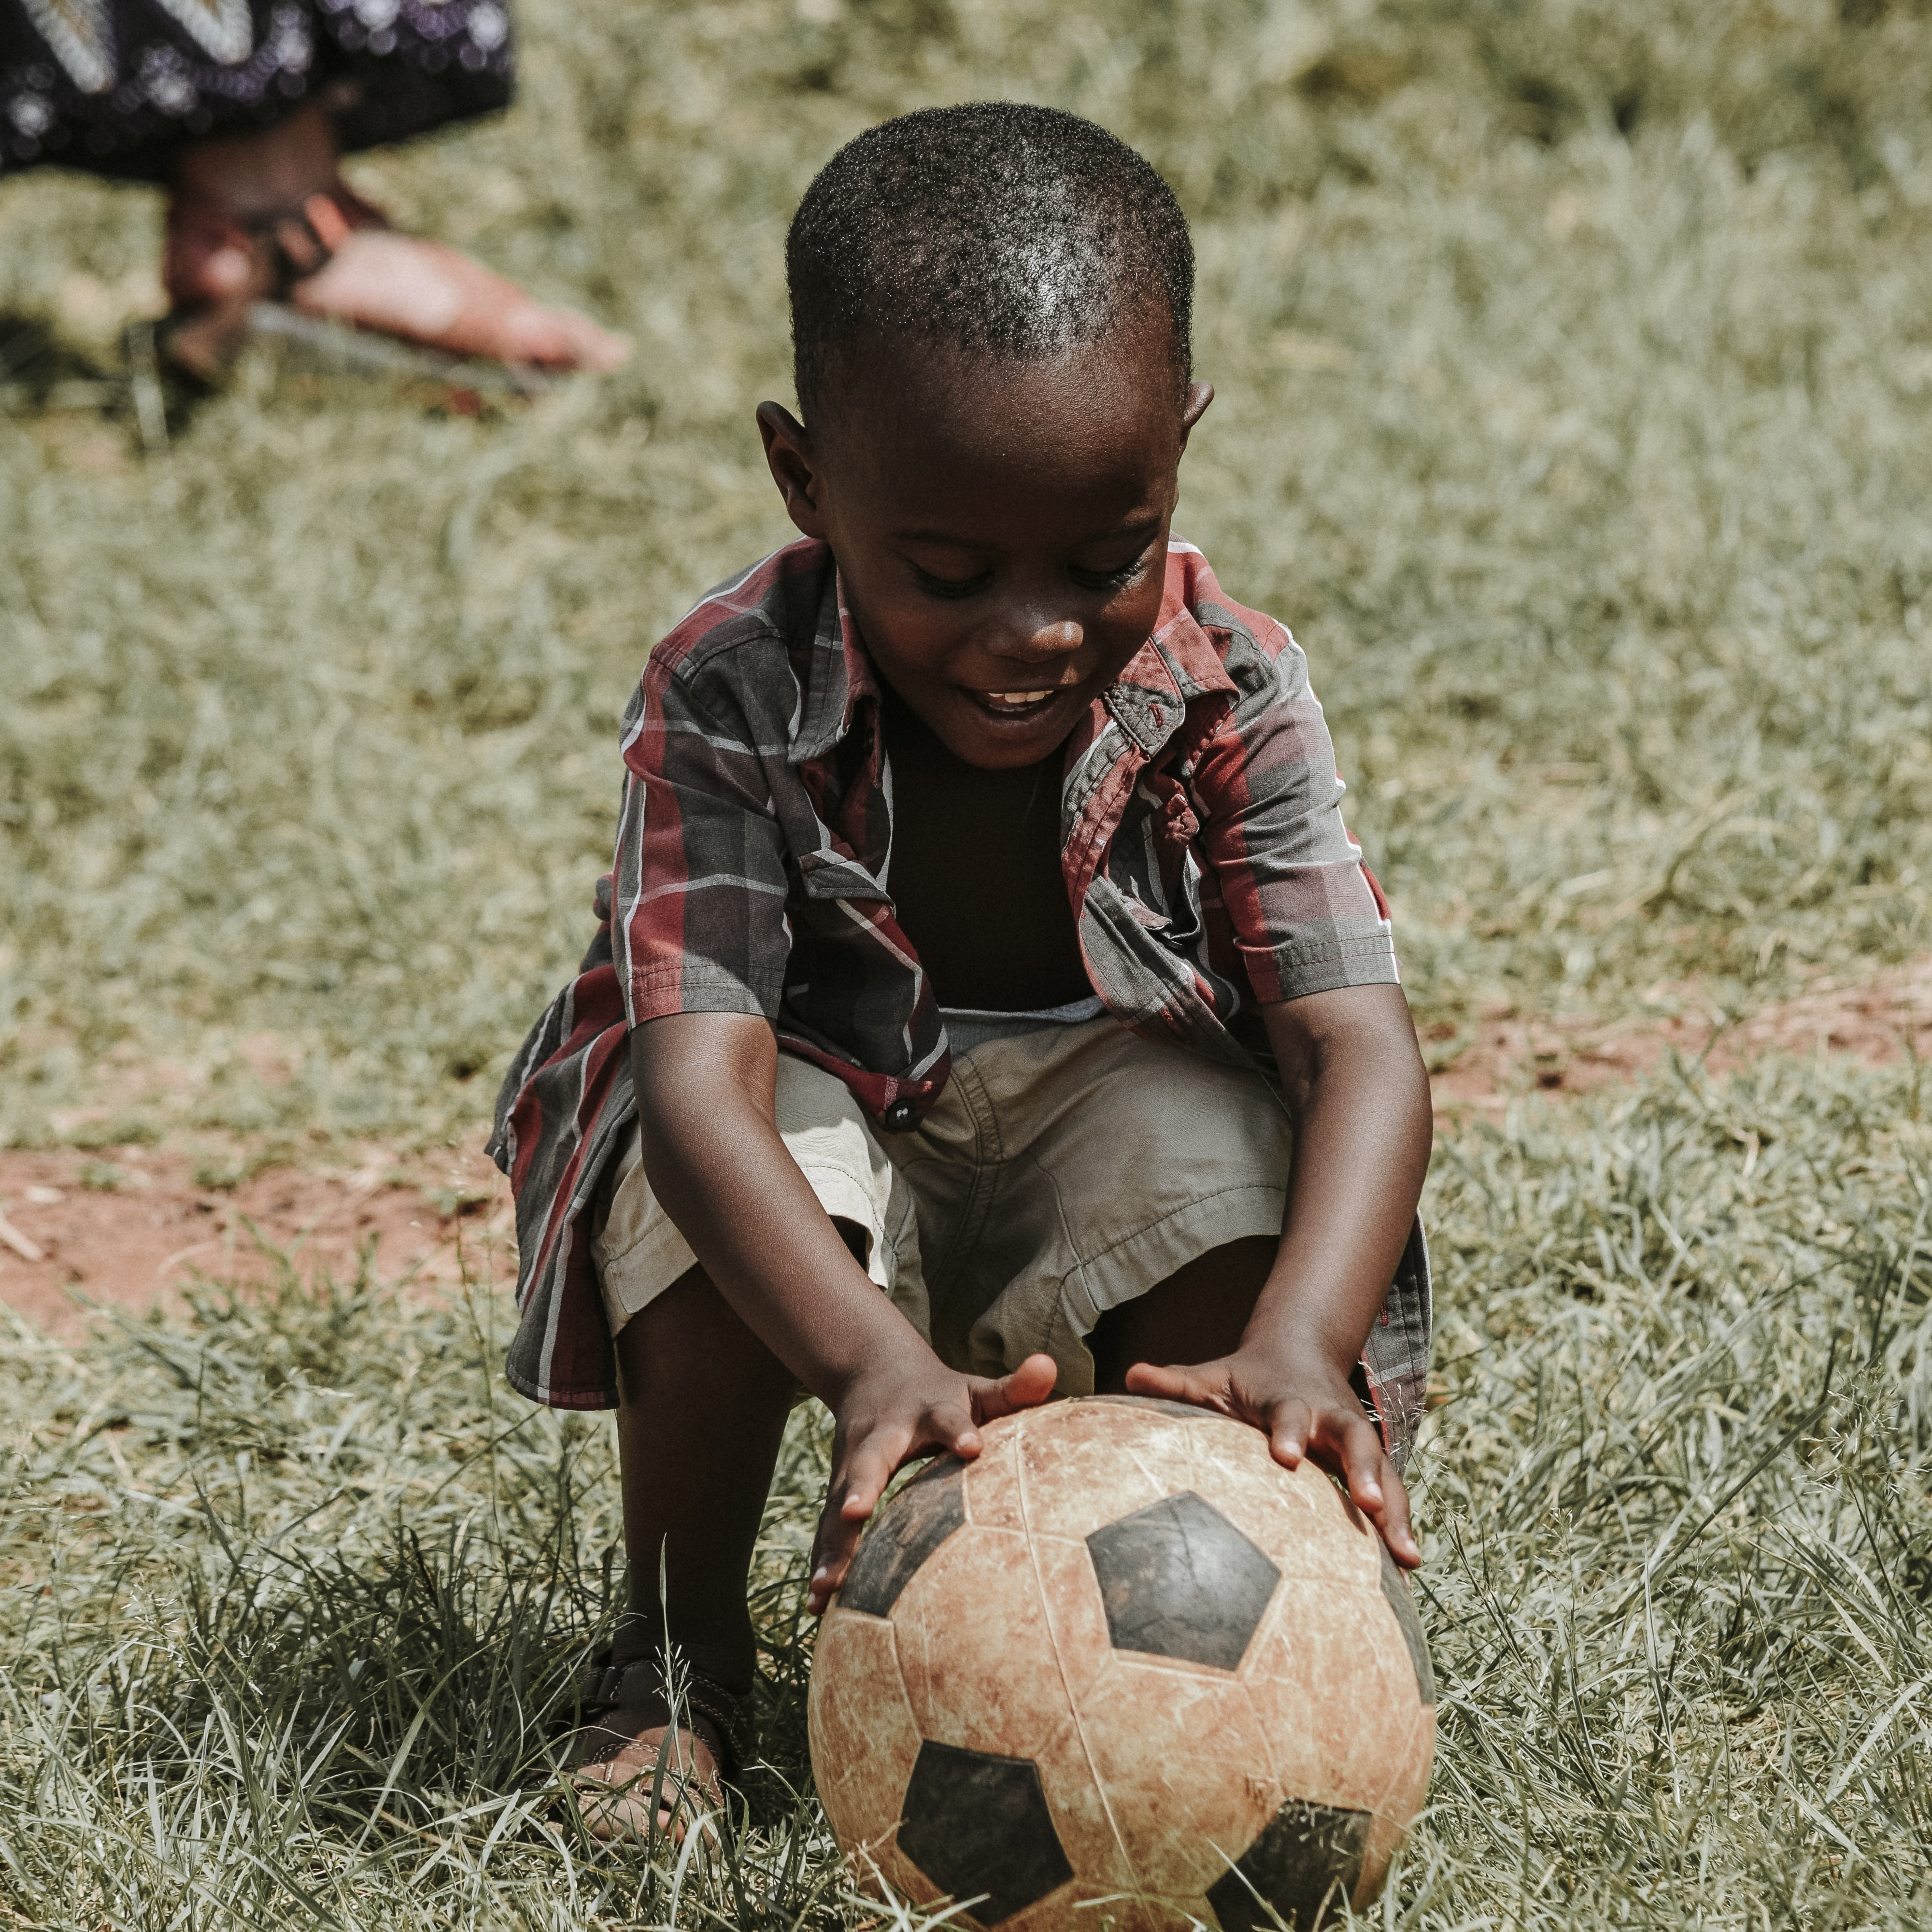 Child smiling and touching the dirty soccer ball  in the field with hands